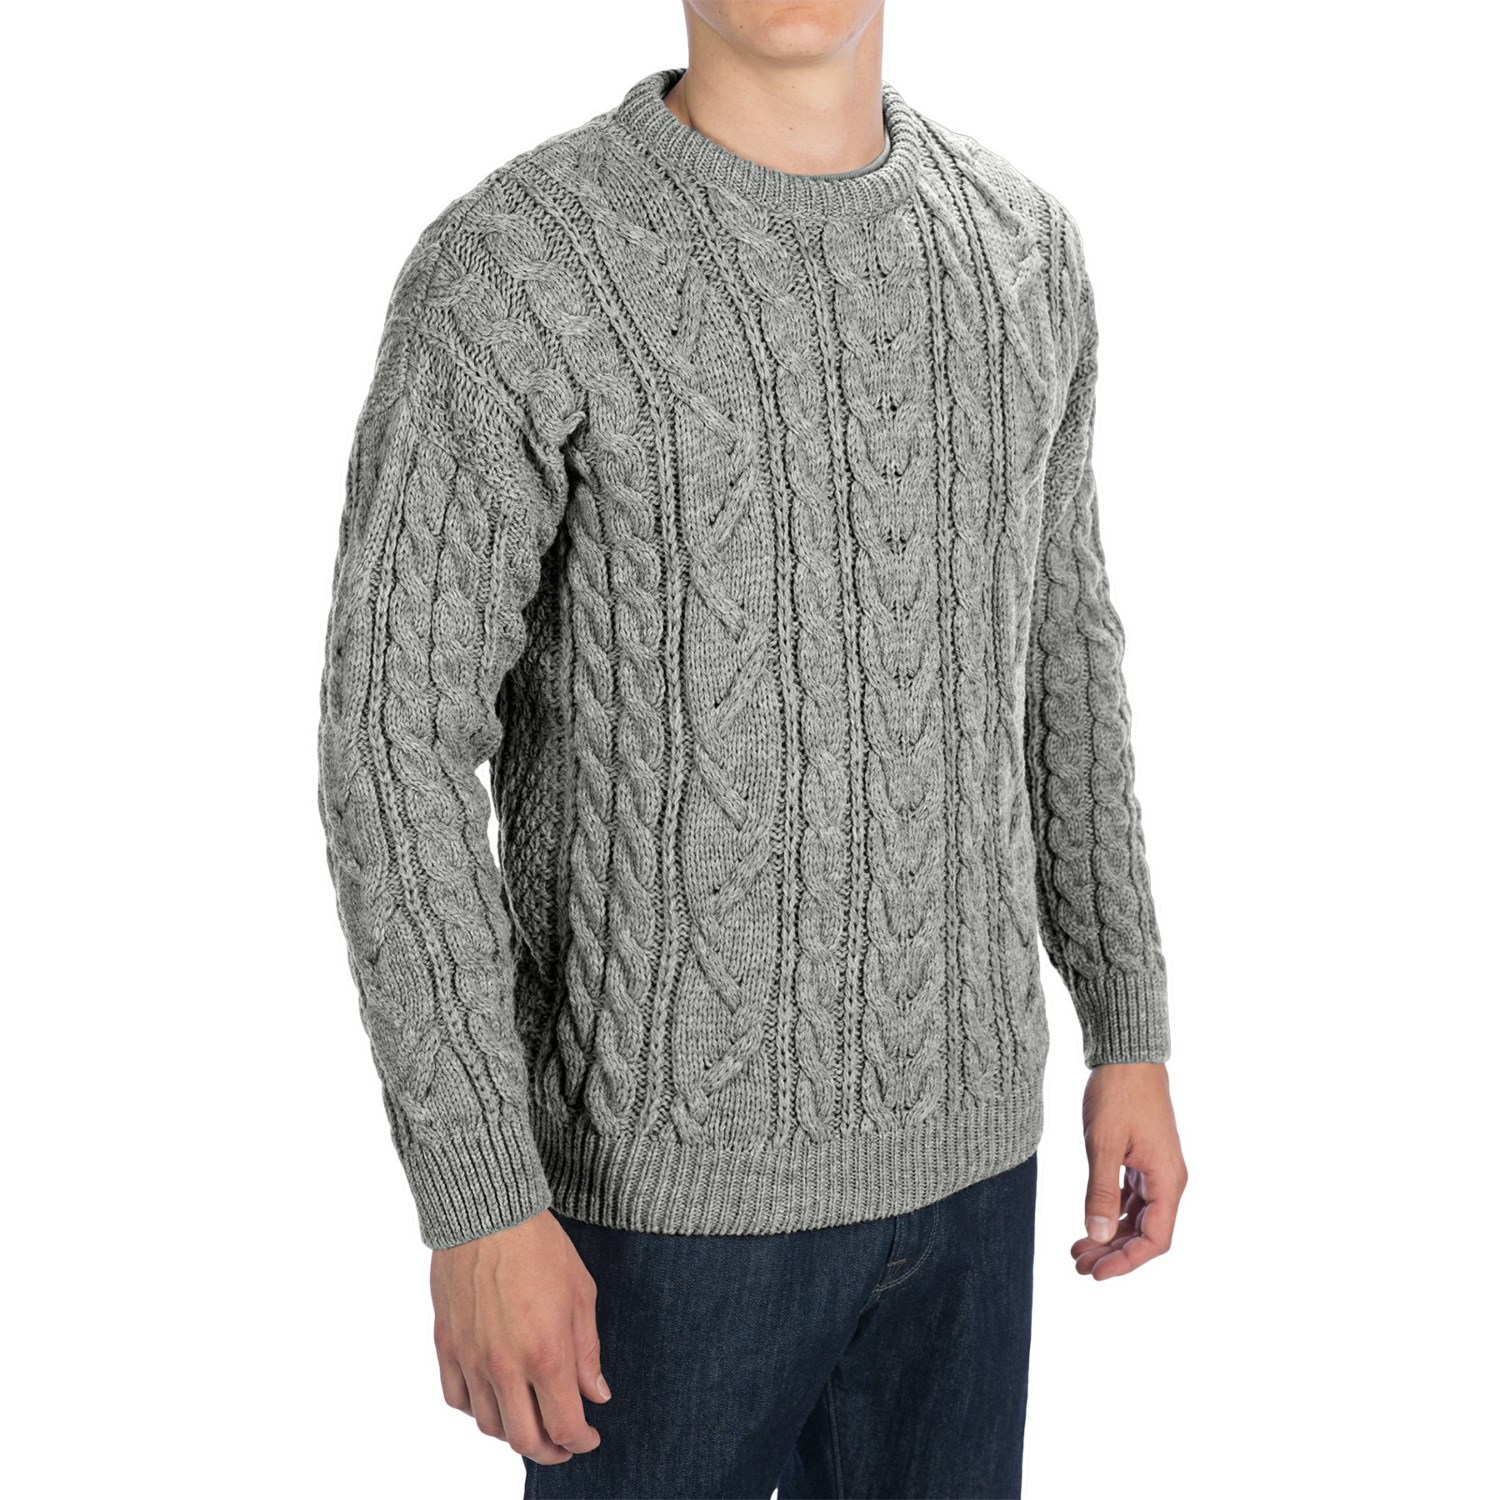 MEN EXTRA FINE MERINO V-NECK LONG-SLEEVE SWEATER $ $ please SIGN IN/REGISTER. MEN EXTRA FINE MERINO KNIT LONG-SLEEVE POLO SHIRT Sweaters Extra Fine Merino Cashmere Lambswool Fashion Cardigan Uniqlo U New. Fleece Casual Shirts Dress Shirts.